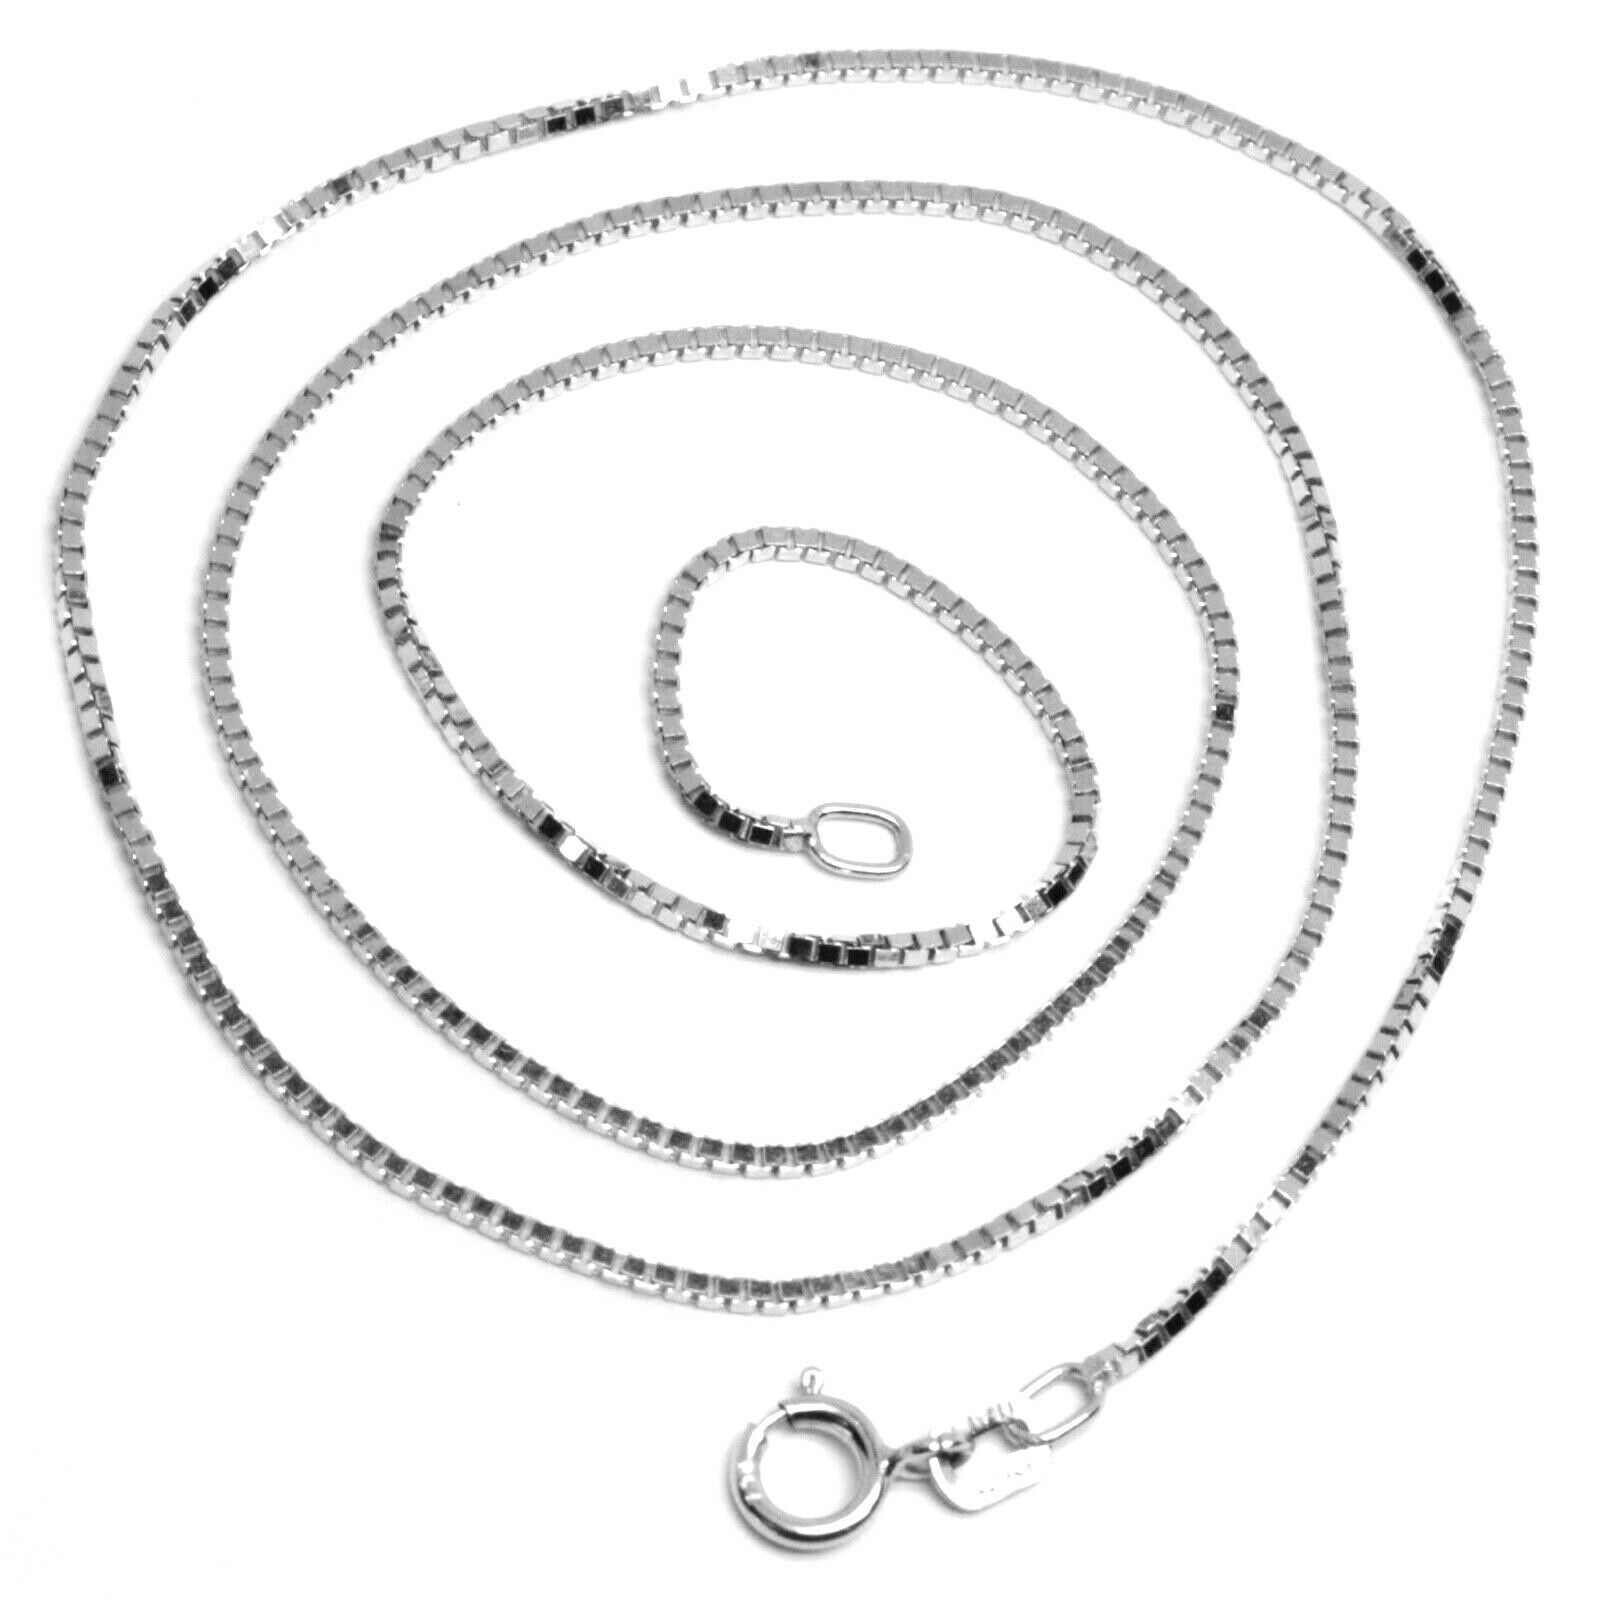 "SOLID 18K WHITE GOLD CHAIN 1.1 MM VENETIAN SQUARE BOX 17.7"", 45 cm, ITALY MADE"